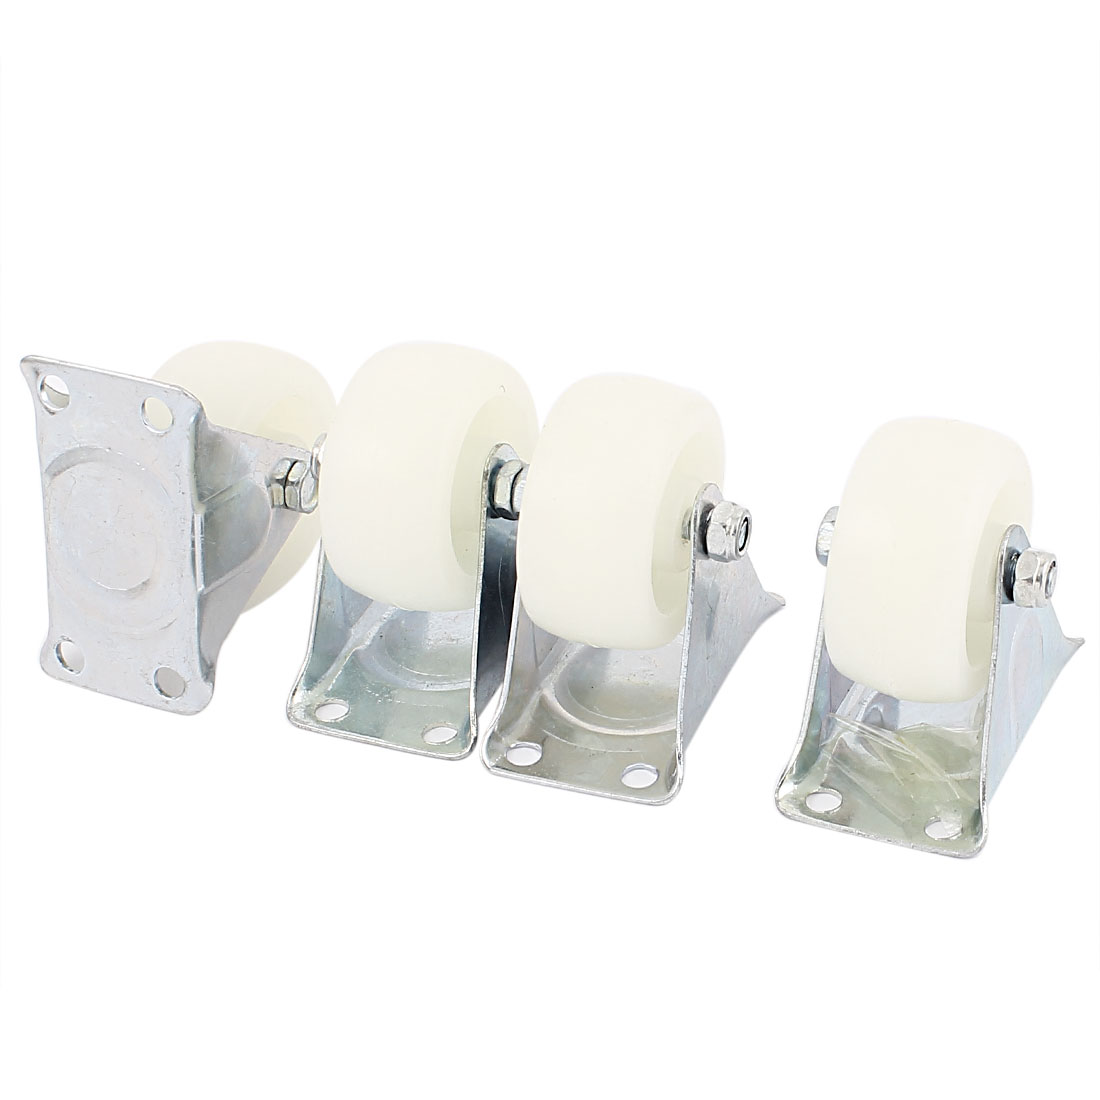 Shopping Trolley Rectangle Metal Top Plate Fixed Caster Wheel White 4Pcs